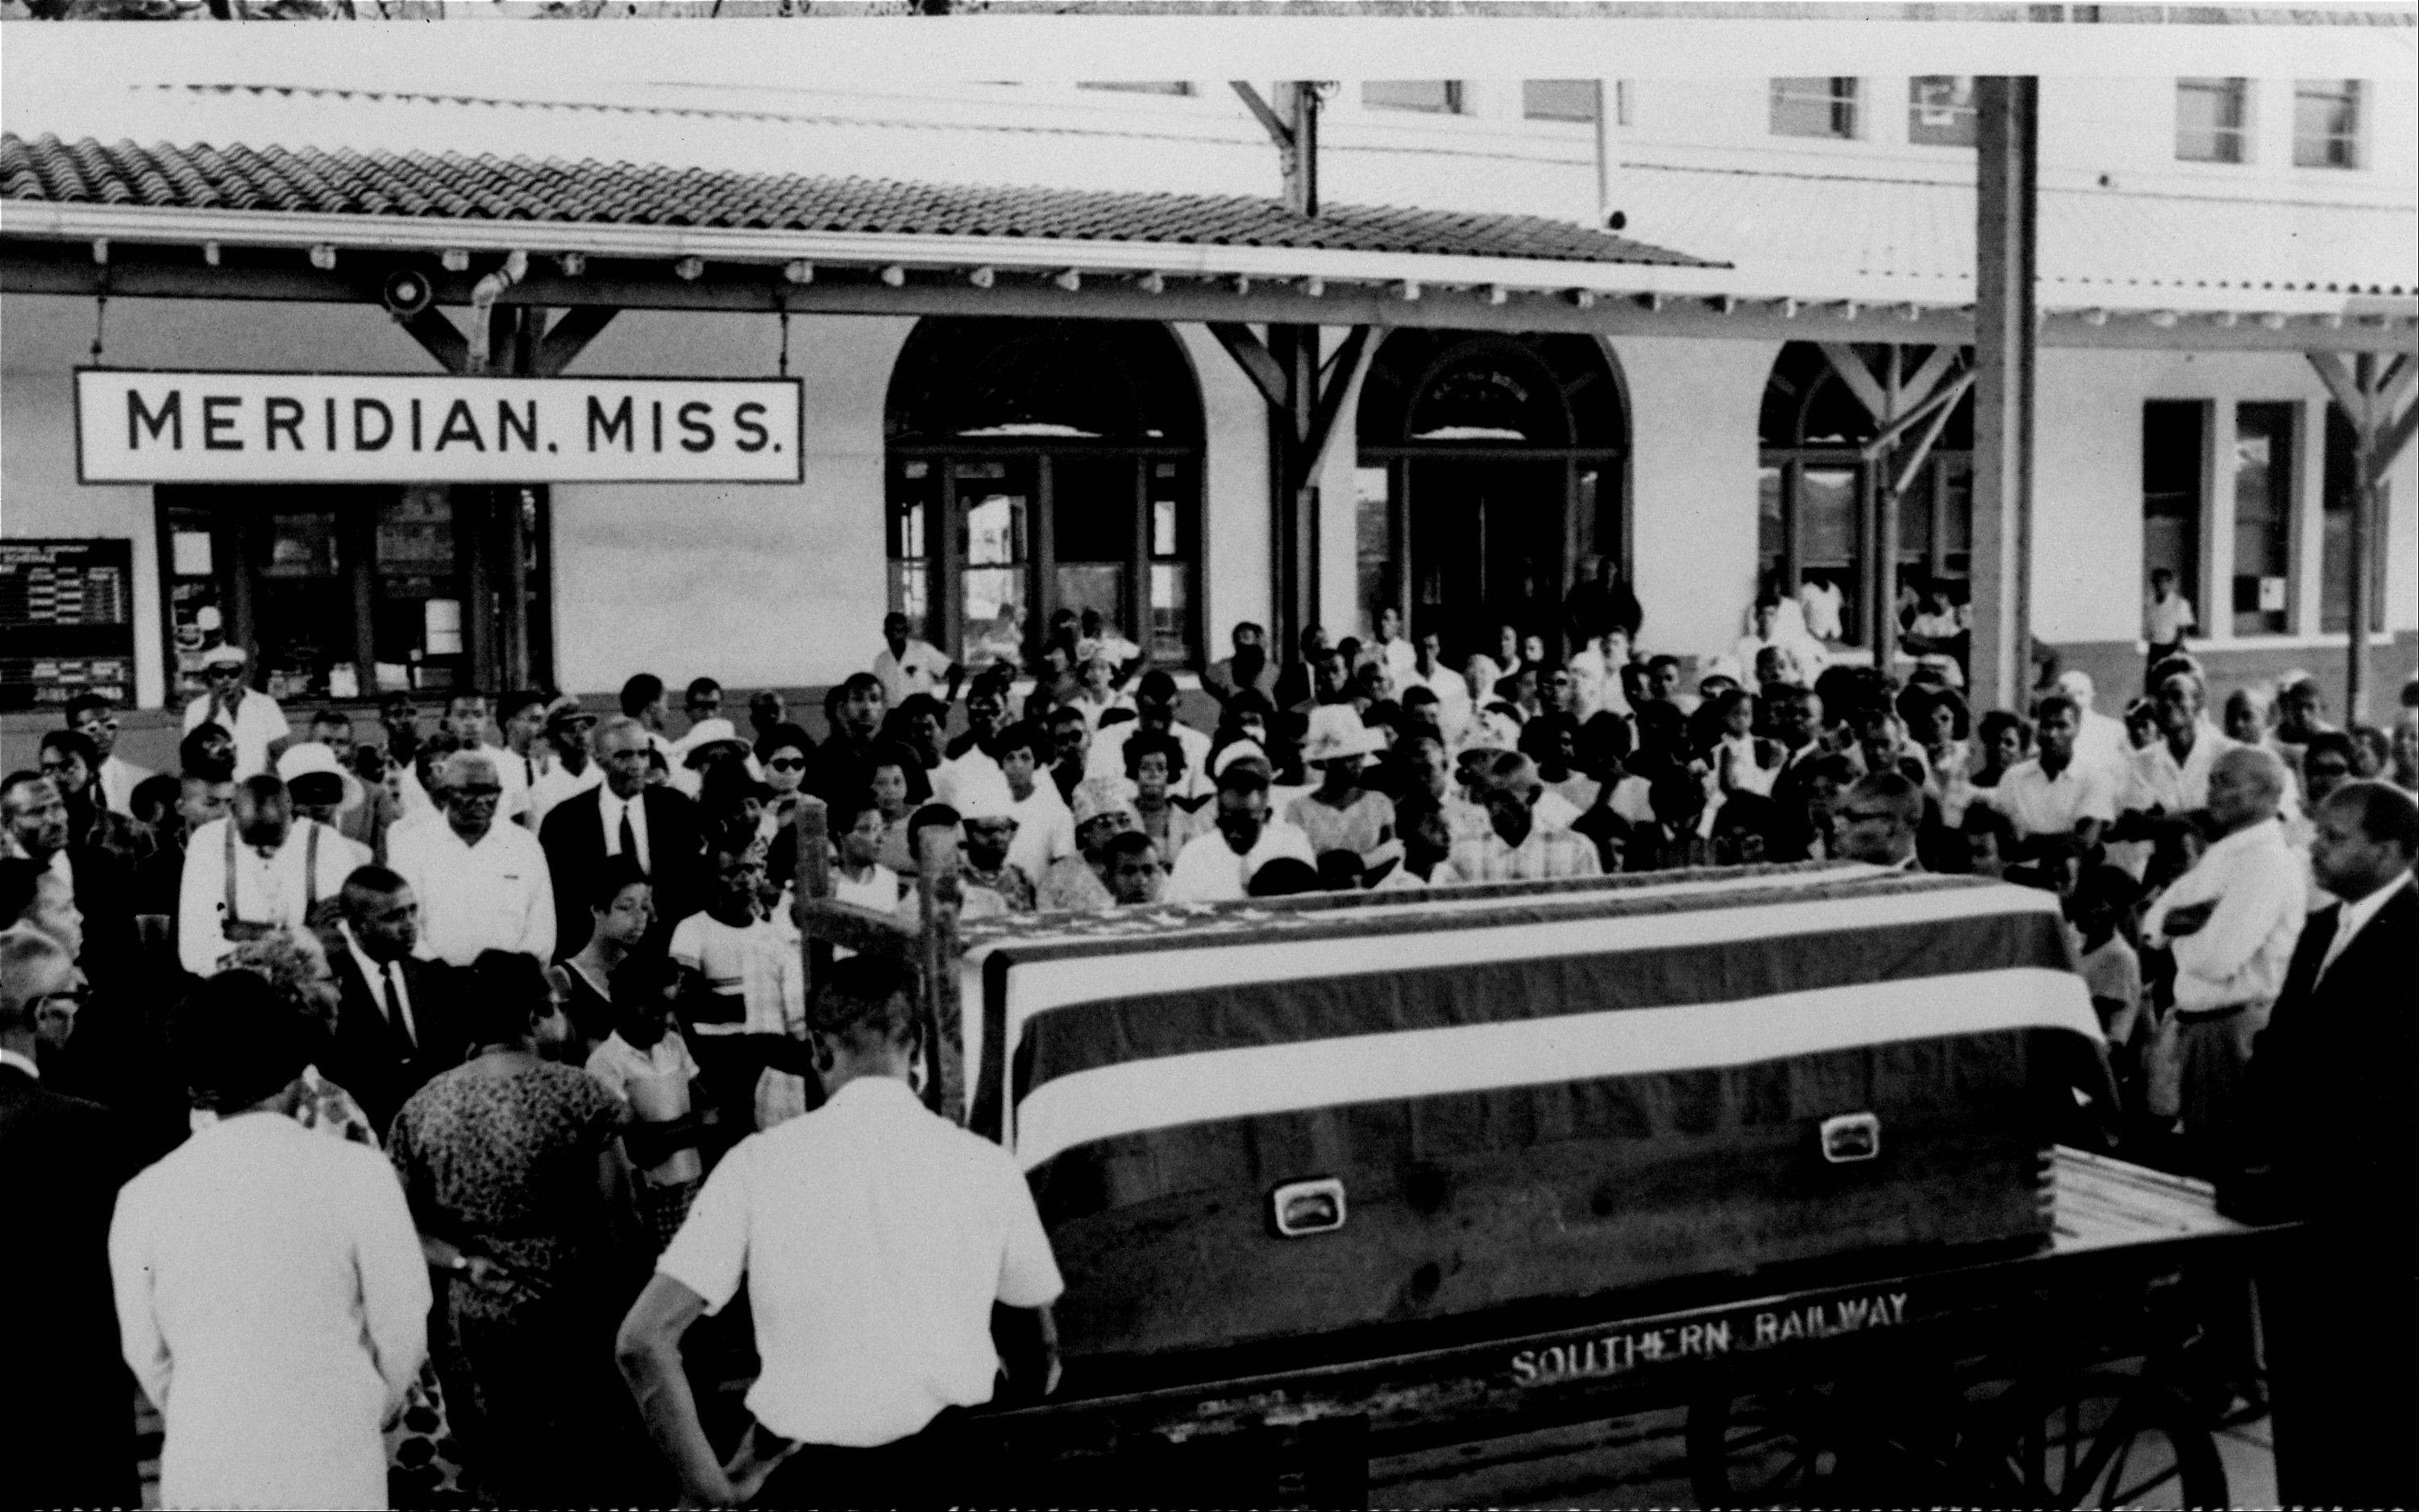 People hold a prayer meeting at the train station in Meridian, Miss., around the casket bearing the body of slain integration leader Medgar Evers in 1963.